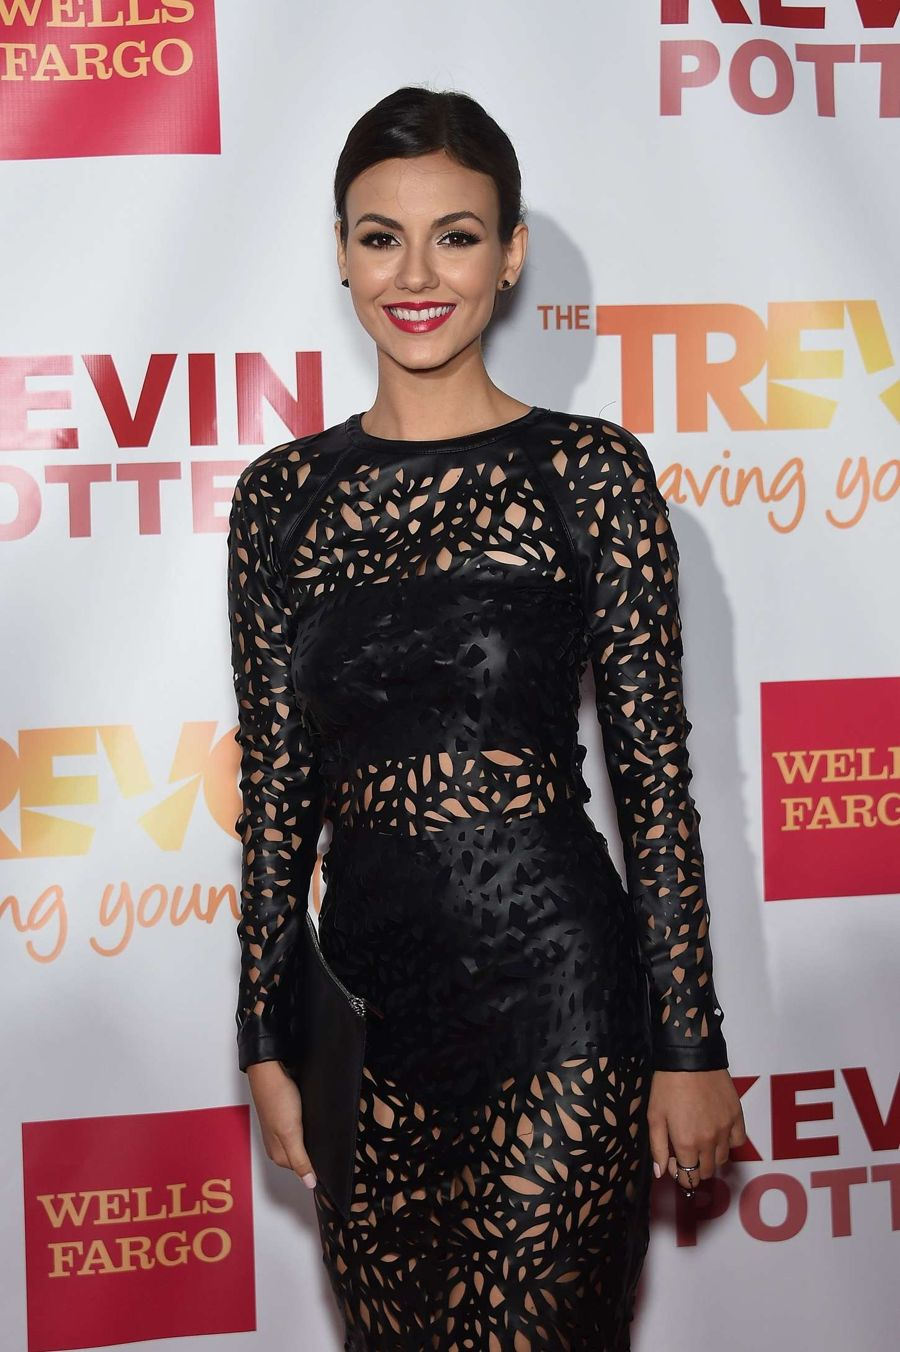 Victoria Justice - TrevorLIVE Event in New York